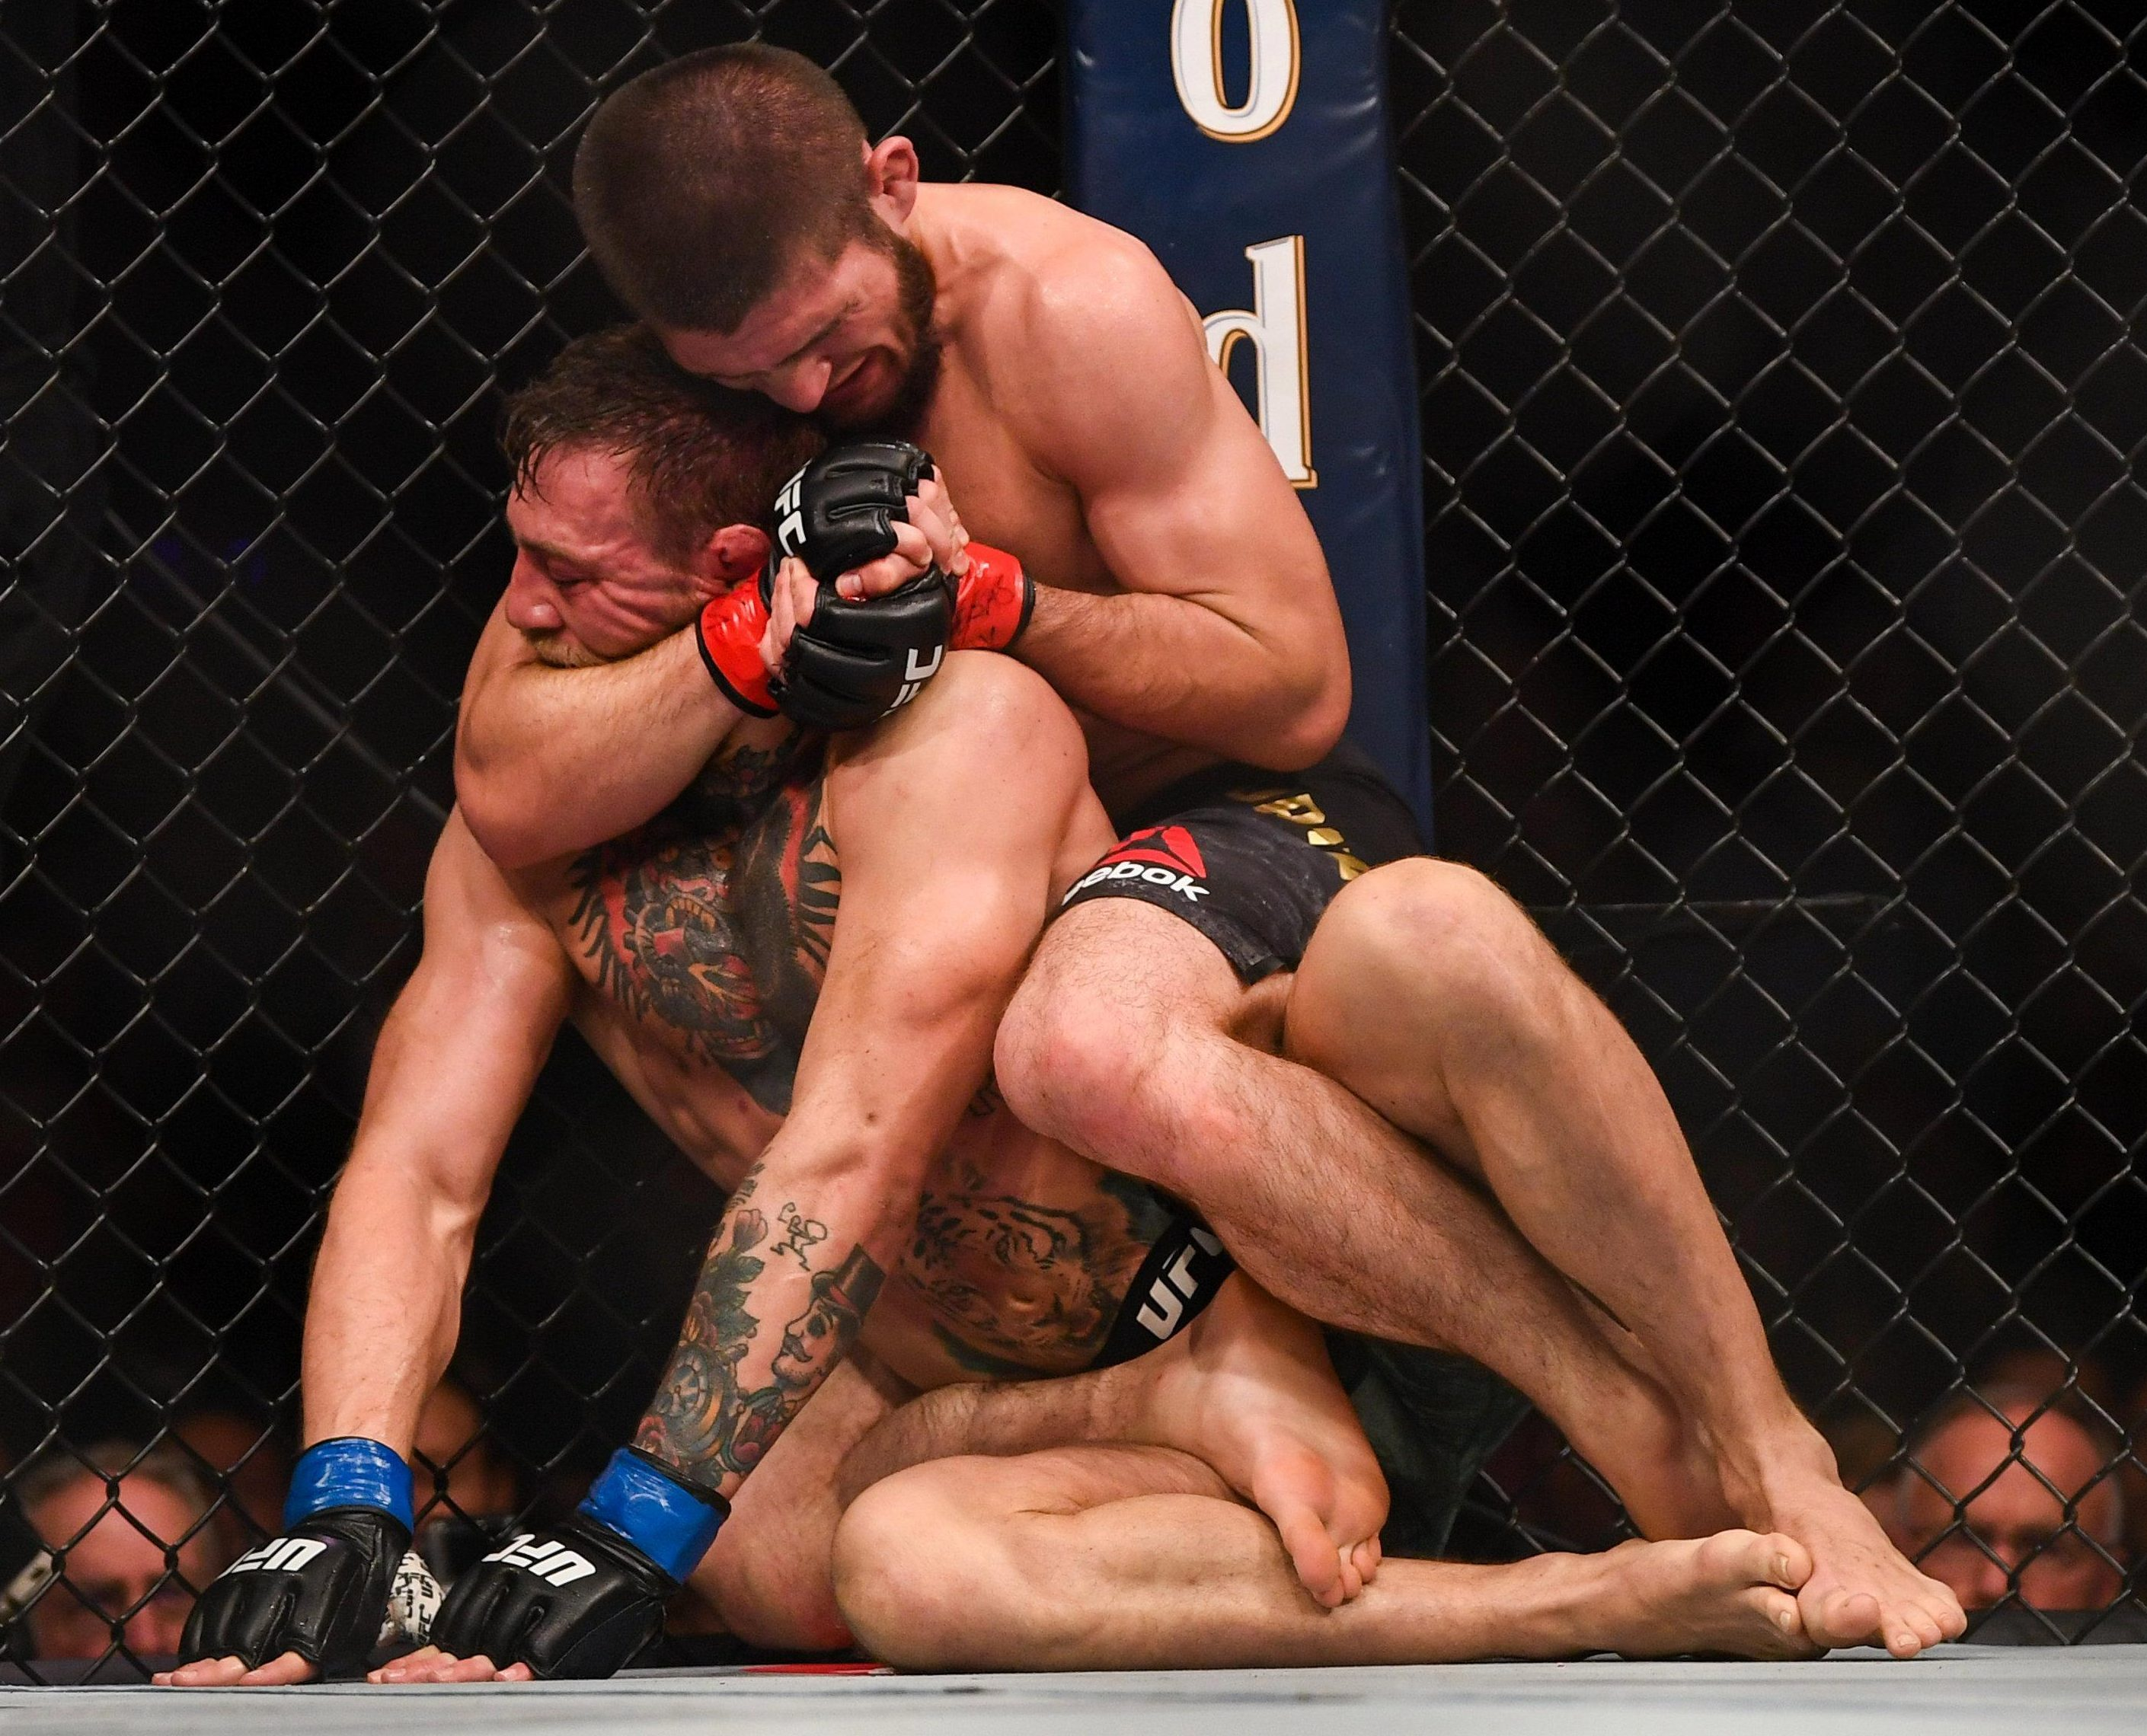 Khabib Nurmagomedov clinched a win vs Conor McGregor with a rear naked choke